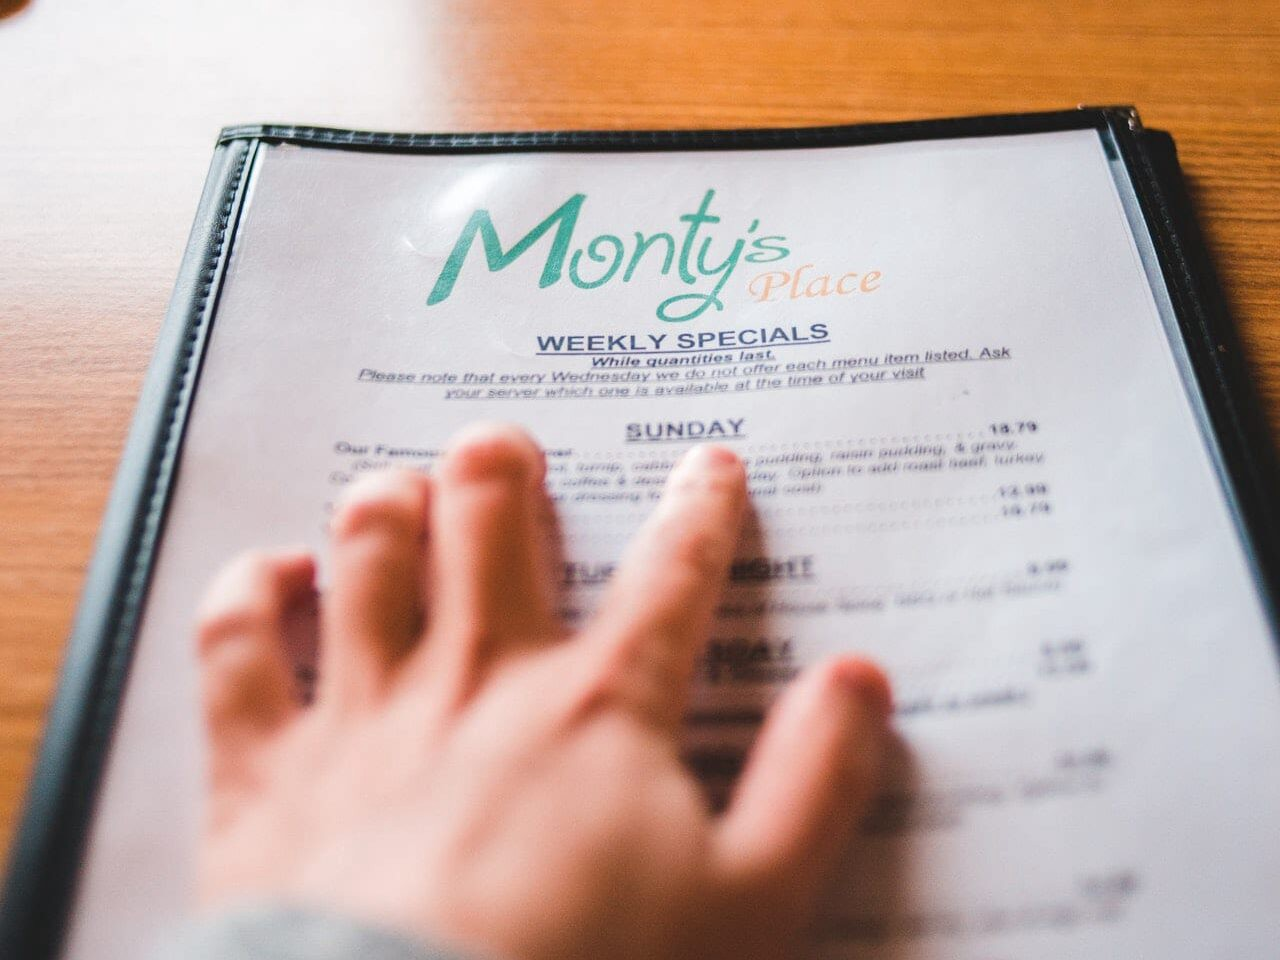 a hand scrolling across items on disposable menus